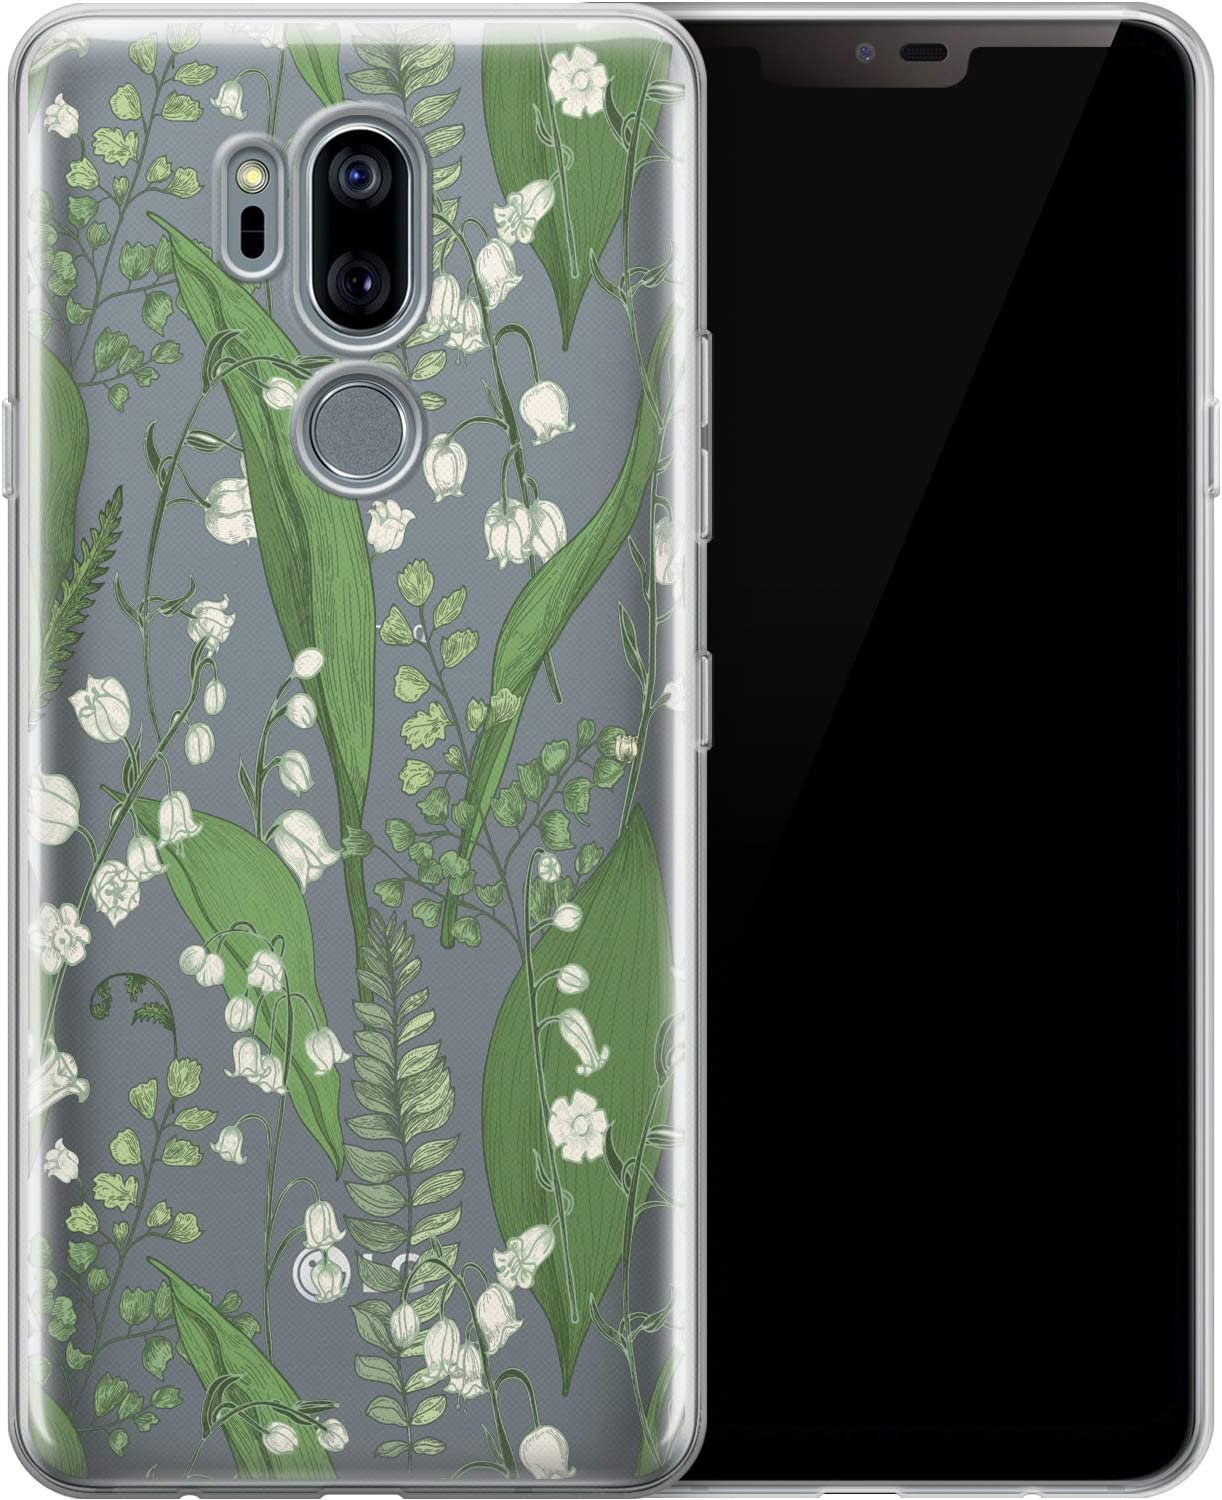 Ufola Case Compatible with LG K30 2019 G8 Stylo 6 K61 G7 ThinQ G6 V40 V50 K8 Clear Cover Print Flexible Cool TPU Design Soft Smooth Slim Lilies of The Valley White Wooden Floral Flowers Botanical